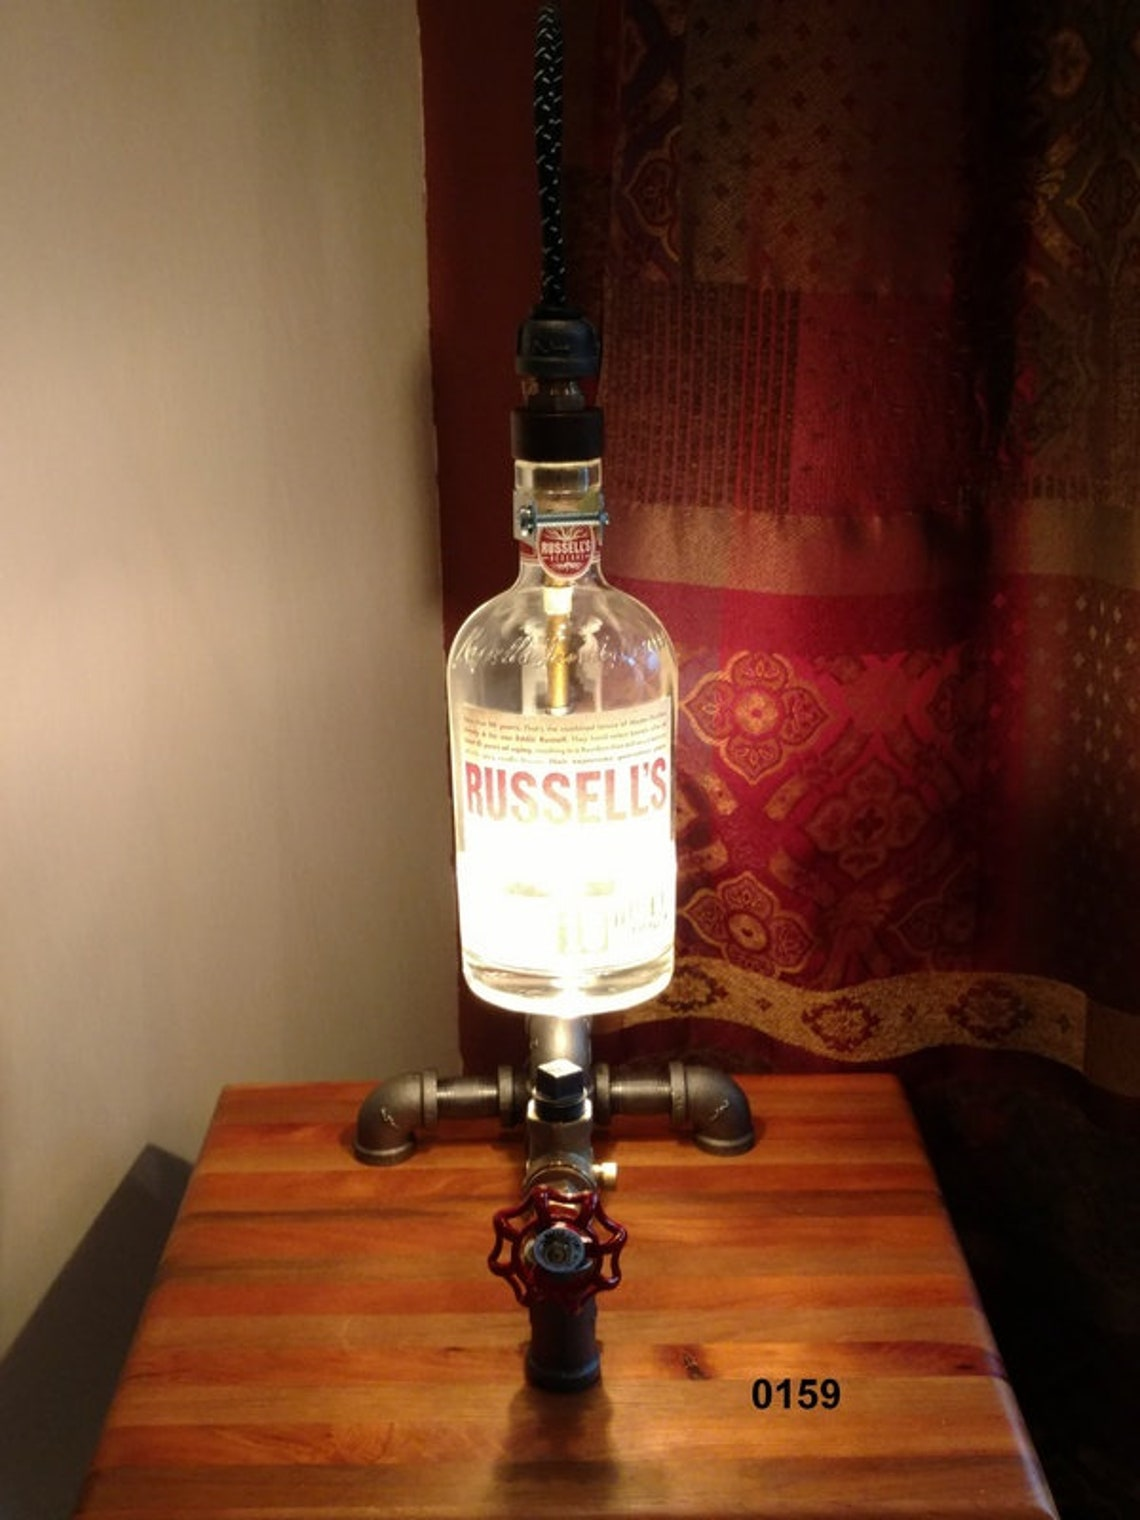 Russell's Bourbon Bottle Lamp, Industrial Pipe Lamp, Desk Lamp, Table Lamp, Accent Lamp, Bar Lamp, Bottle Lamp - Eclairage